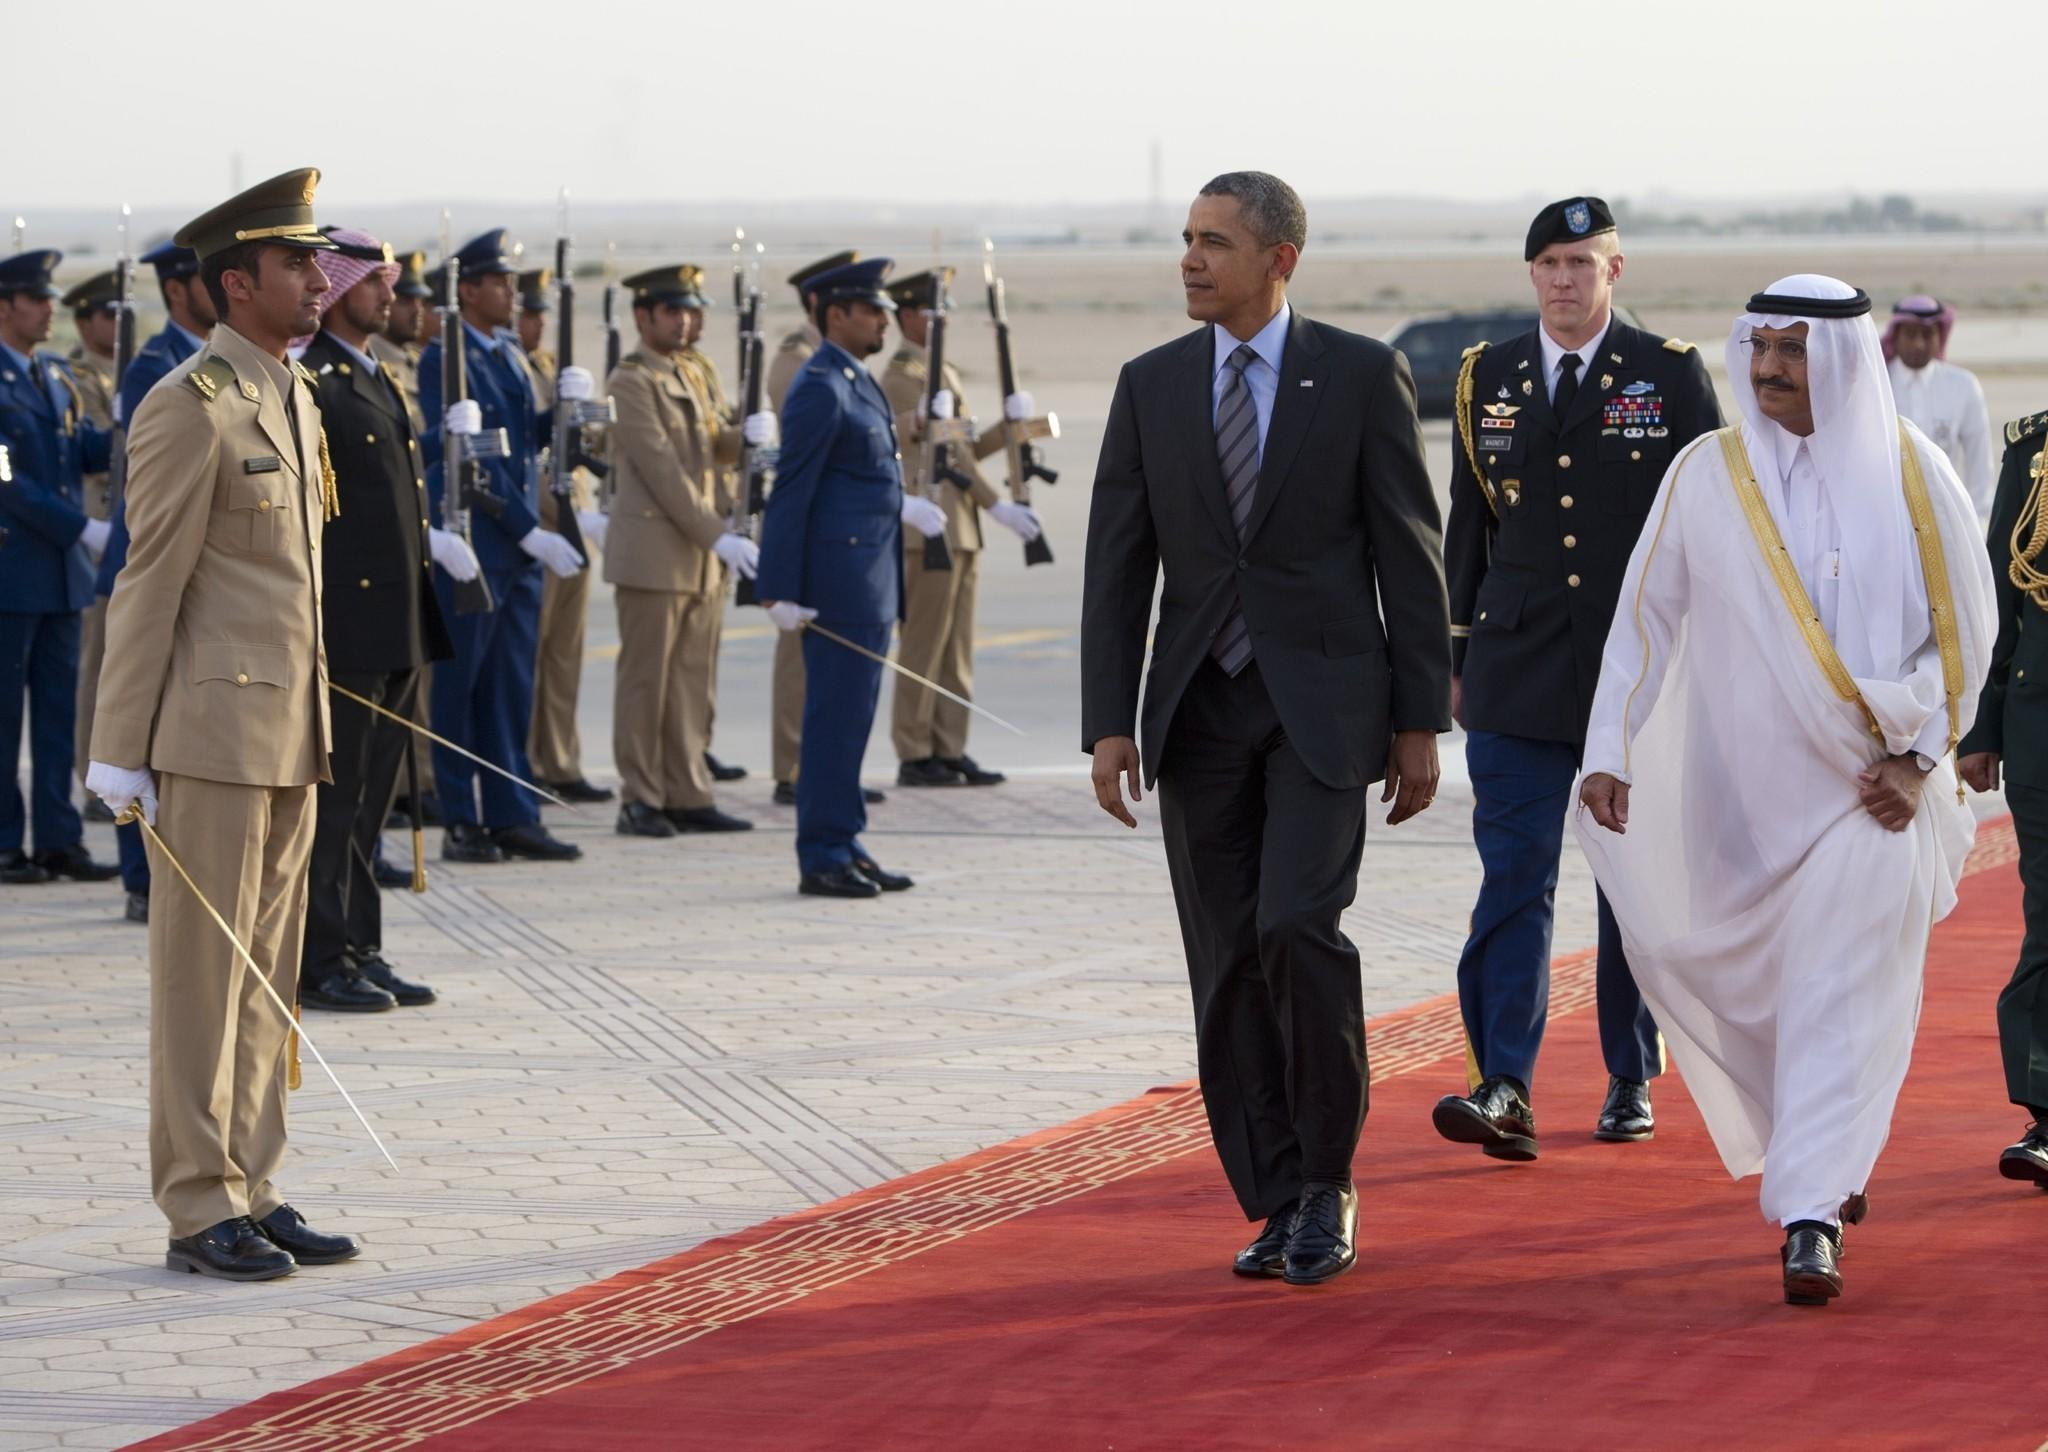 President Obama is welcomed by Prince Khaled bin Bandar bin Abdulaziz, emir of Riyadh, right, upon the president's arrival in the Saudi capital last month for a meeting with King Abdullah.